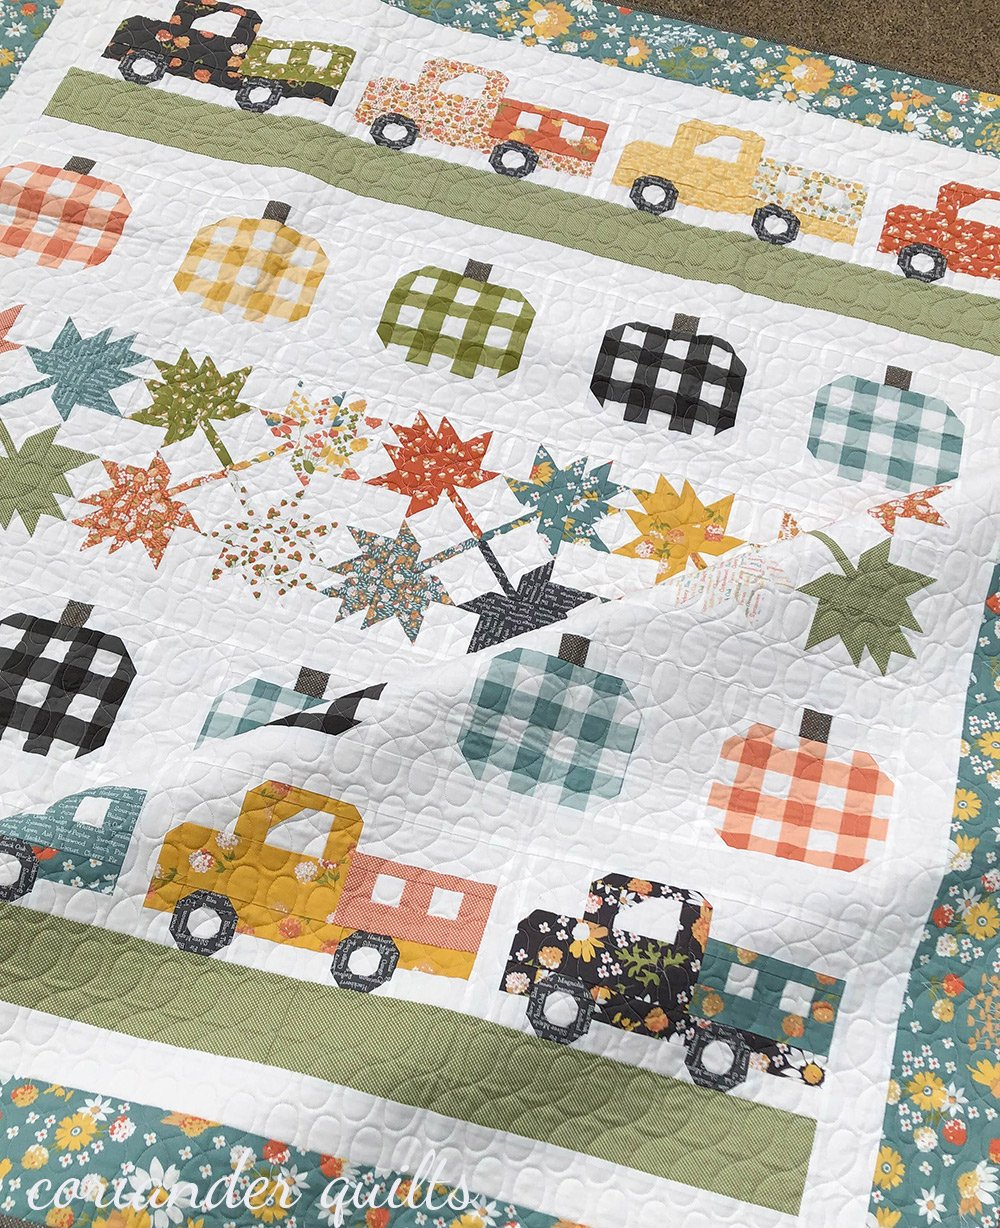 *PRE-ORDER* Roadside Harvest Quilt Kit featuring Cozy Up Fabric by Corey Yoder   Available August 2021